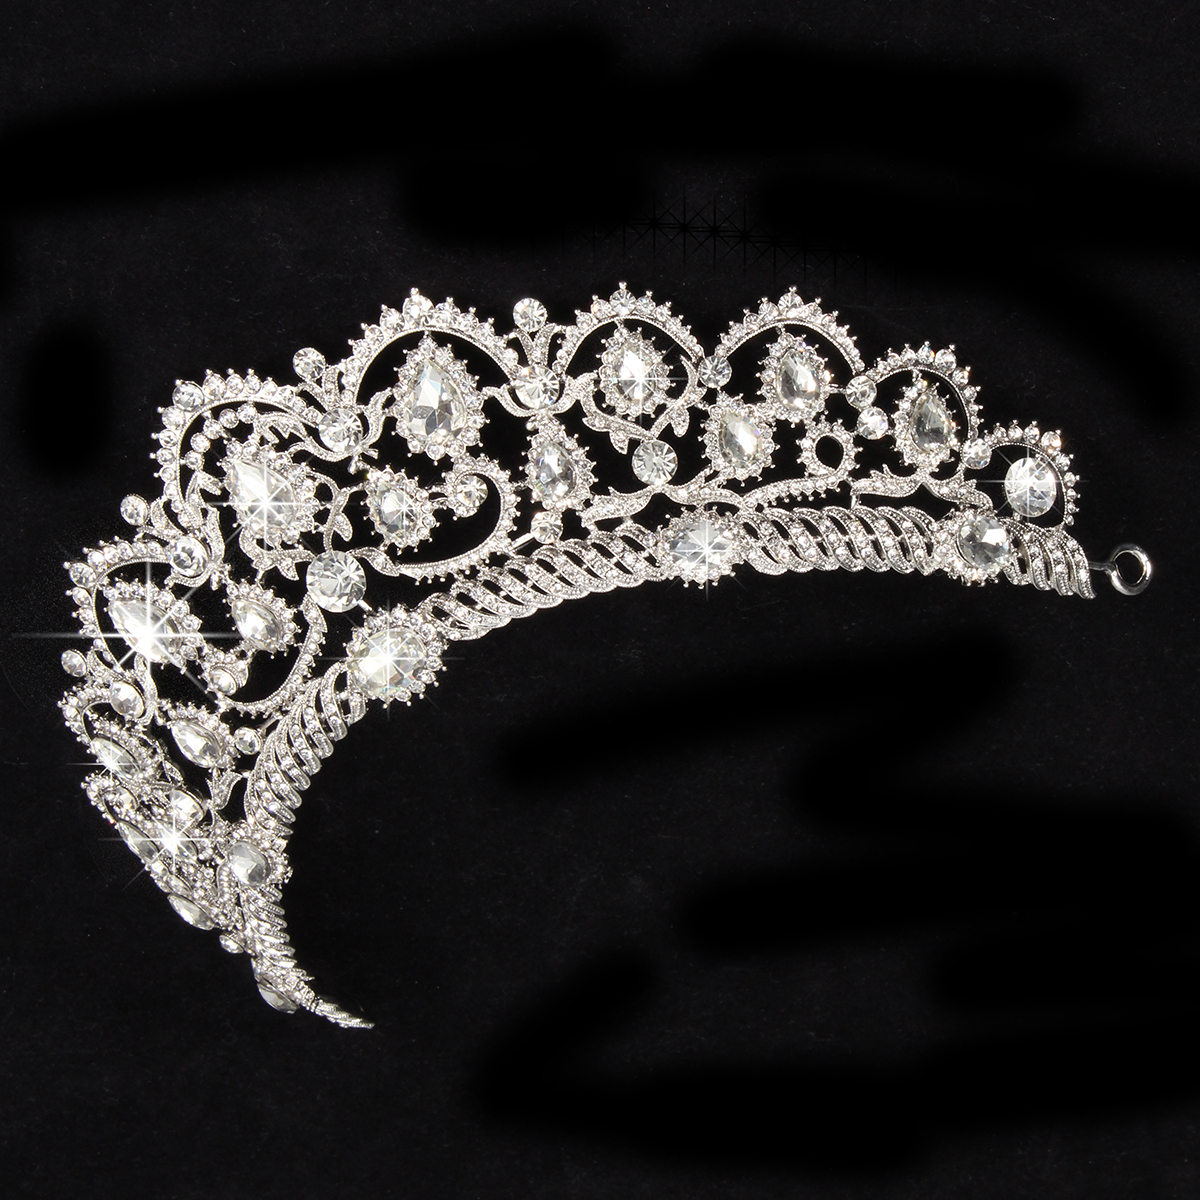 Bride Rhinestone Crystal Princess Queen Crown Tiara Head Jewelry Headpiece Wedding Party Headbrand